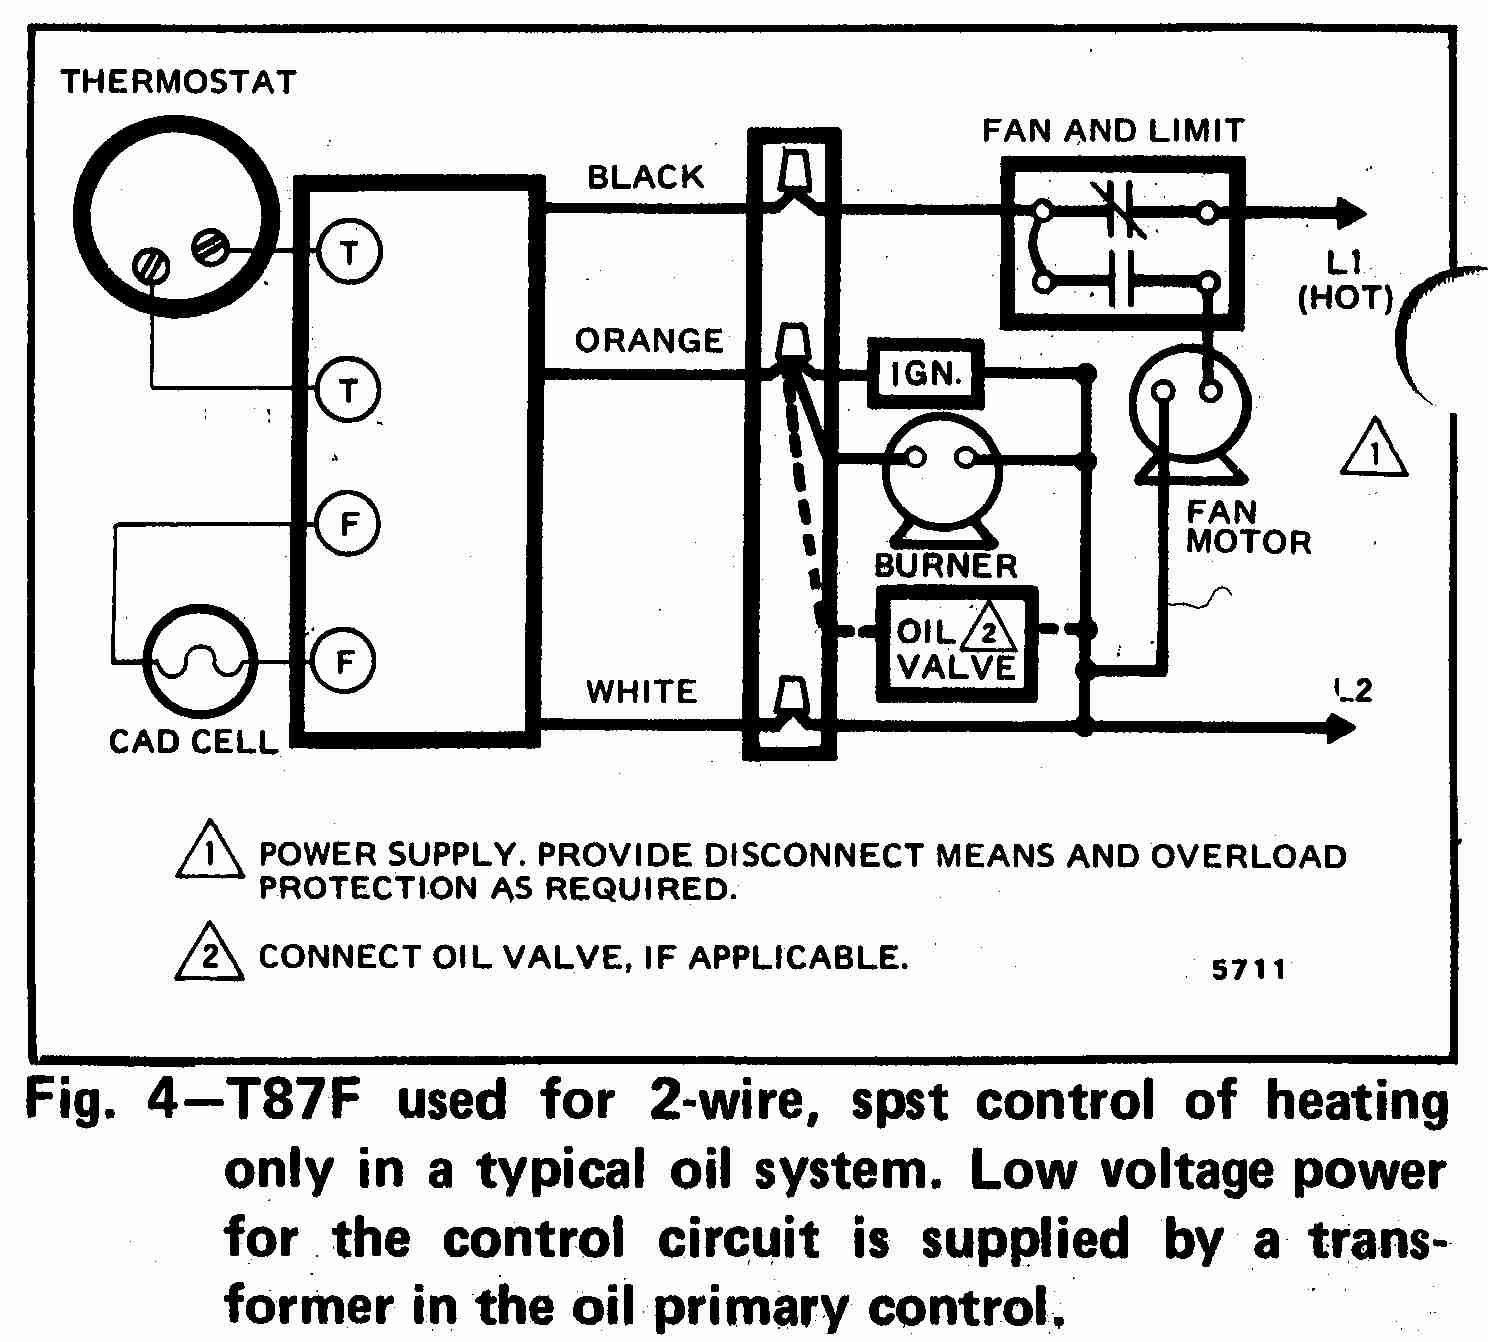 Unique Wiring Diagram for Underfloor Heating thermostat